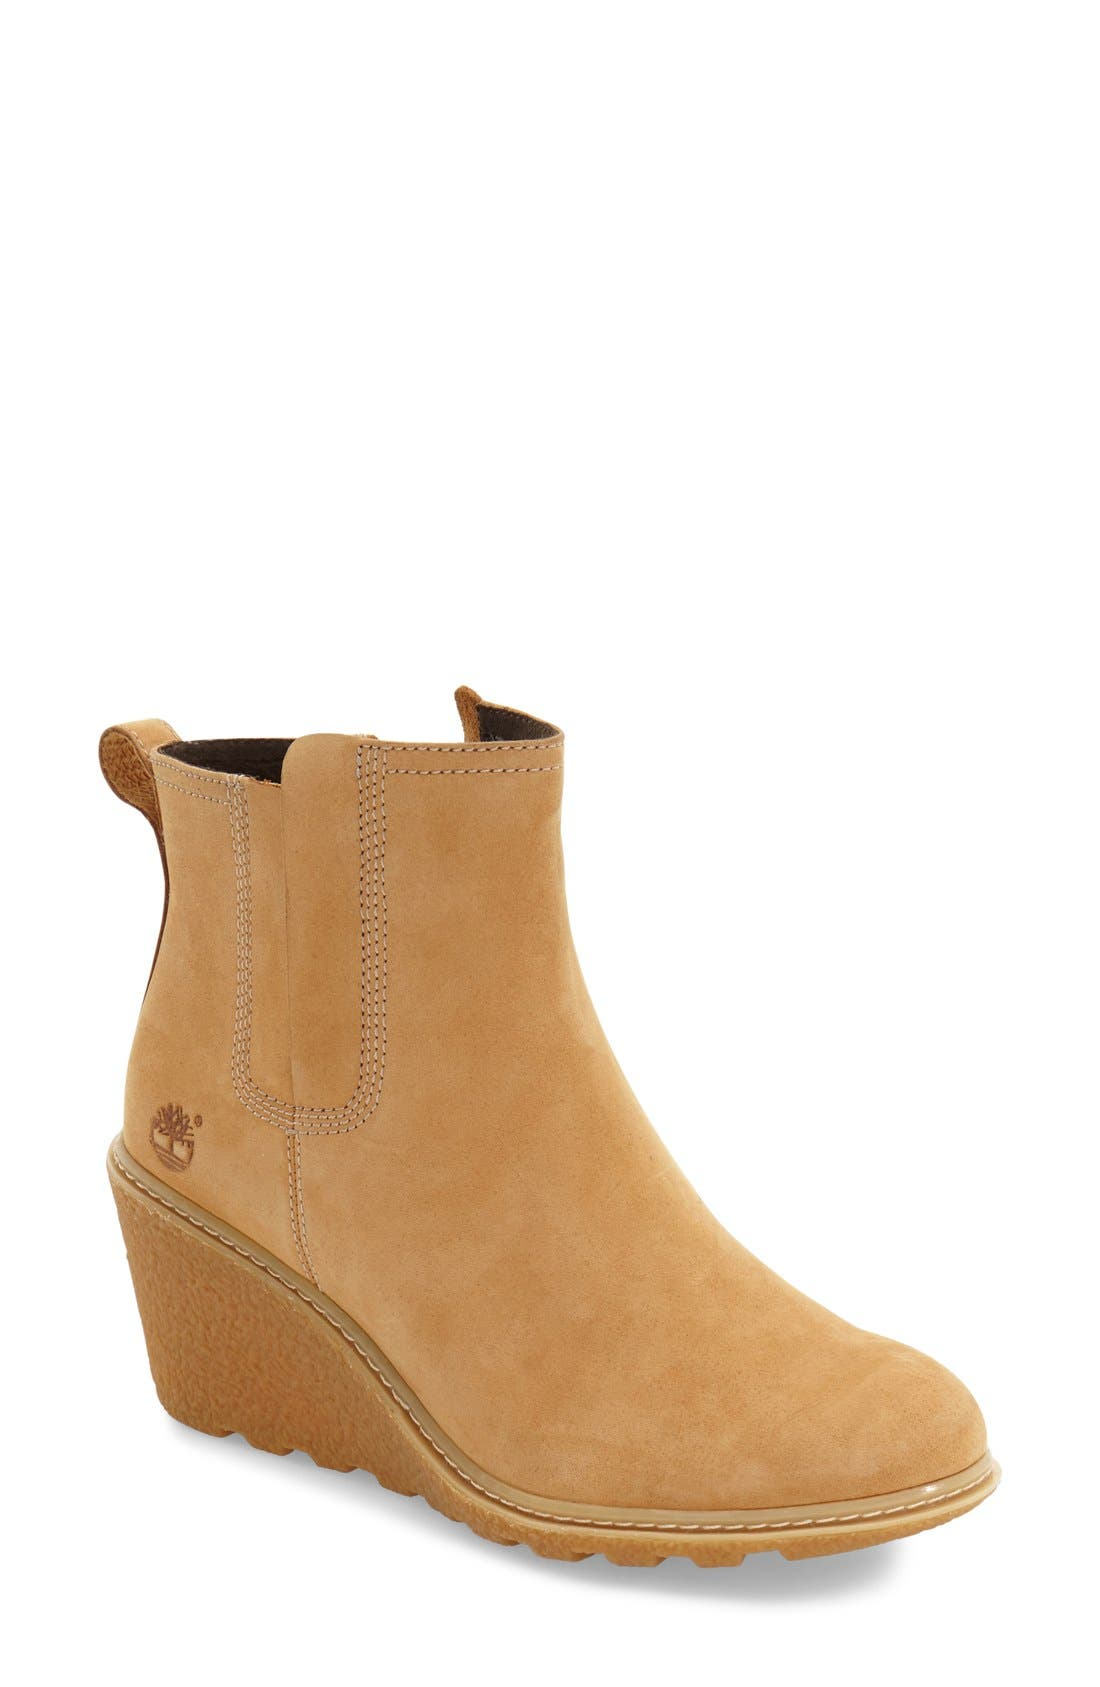 'Amston' Chelsea Wedge Boot,                             Main thumbnail 1, color,                             Wheat Nubuck Leather